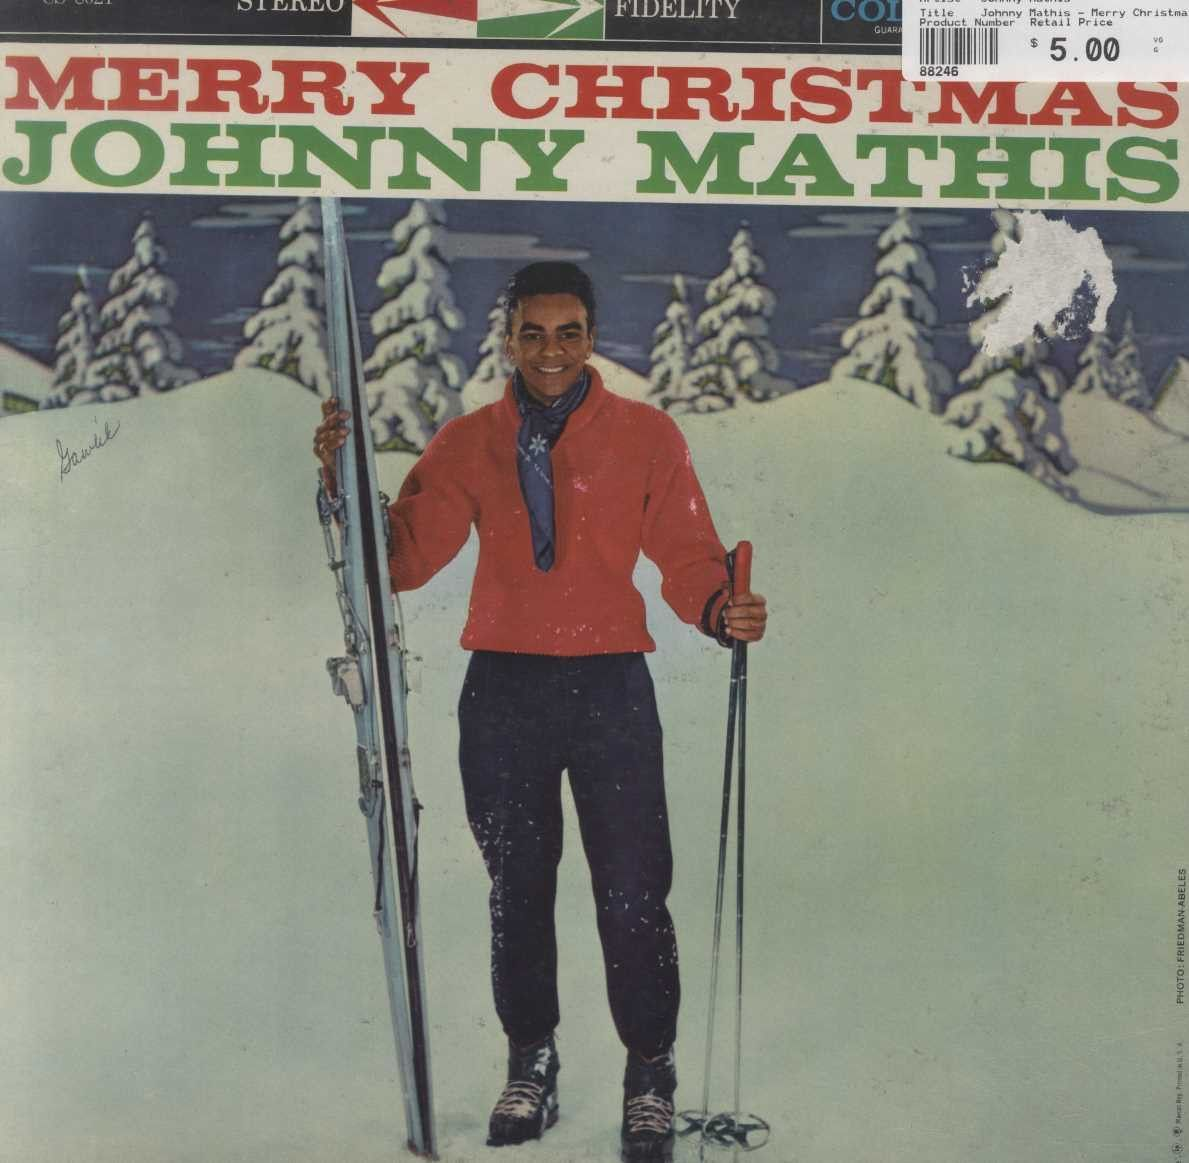 Johnny Mathis - Merry Christmas   Pinterest   Johnny mathis and Products